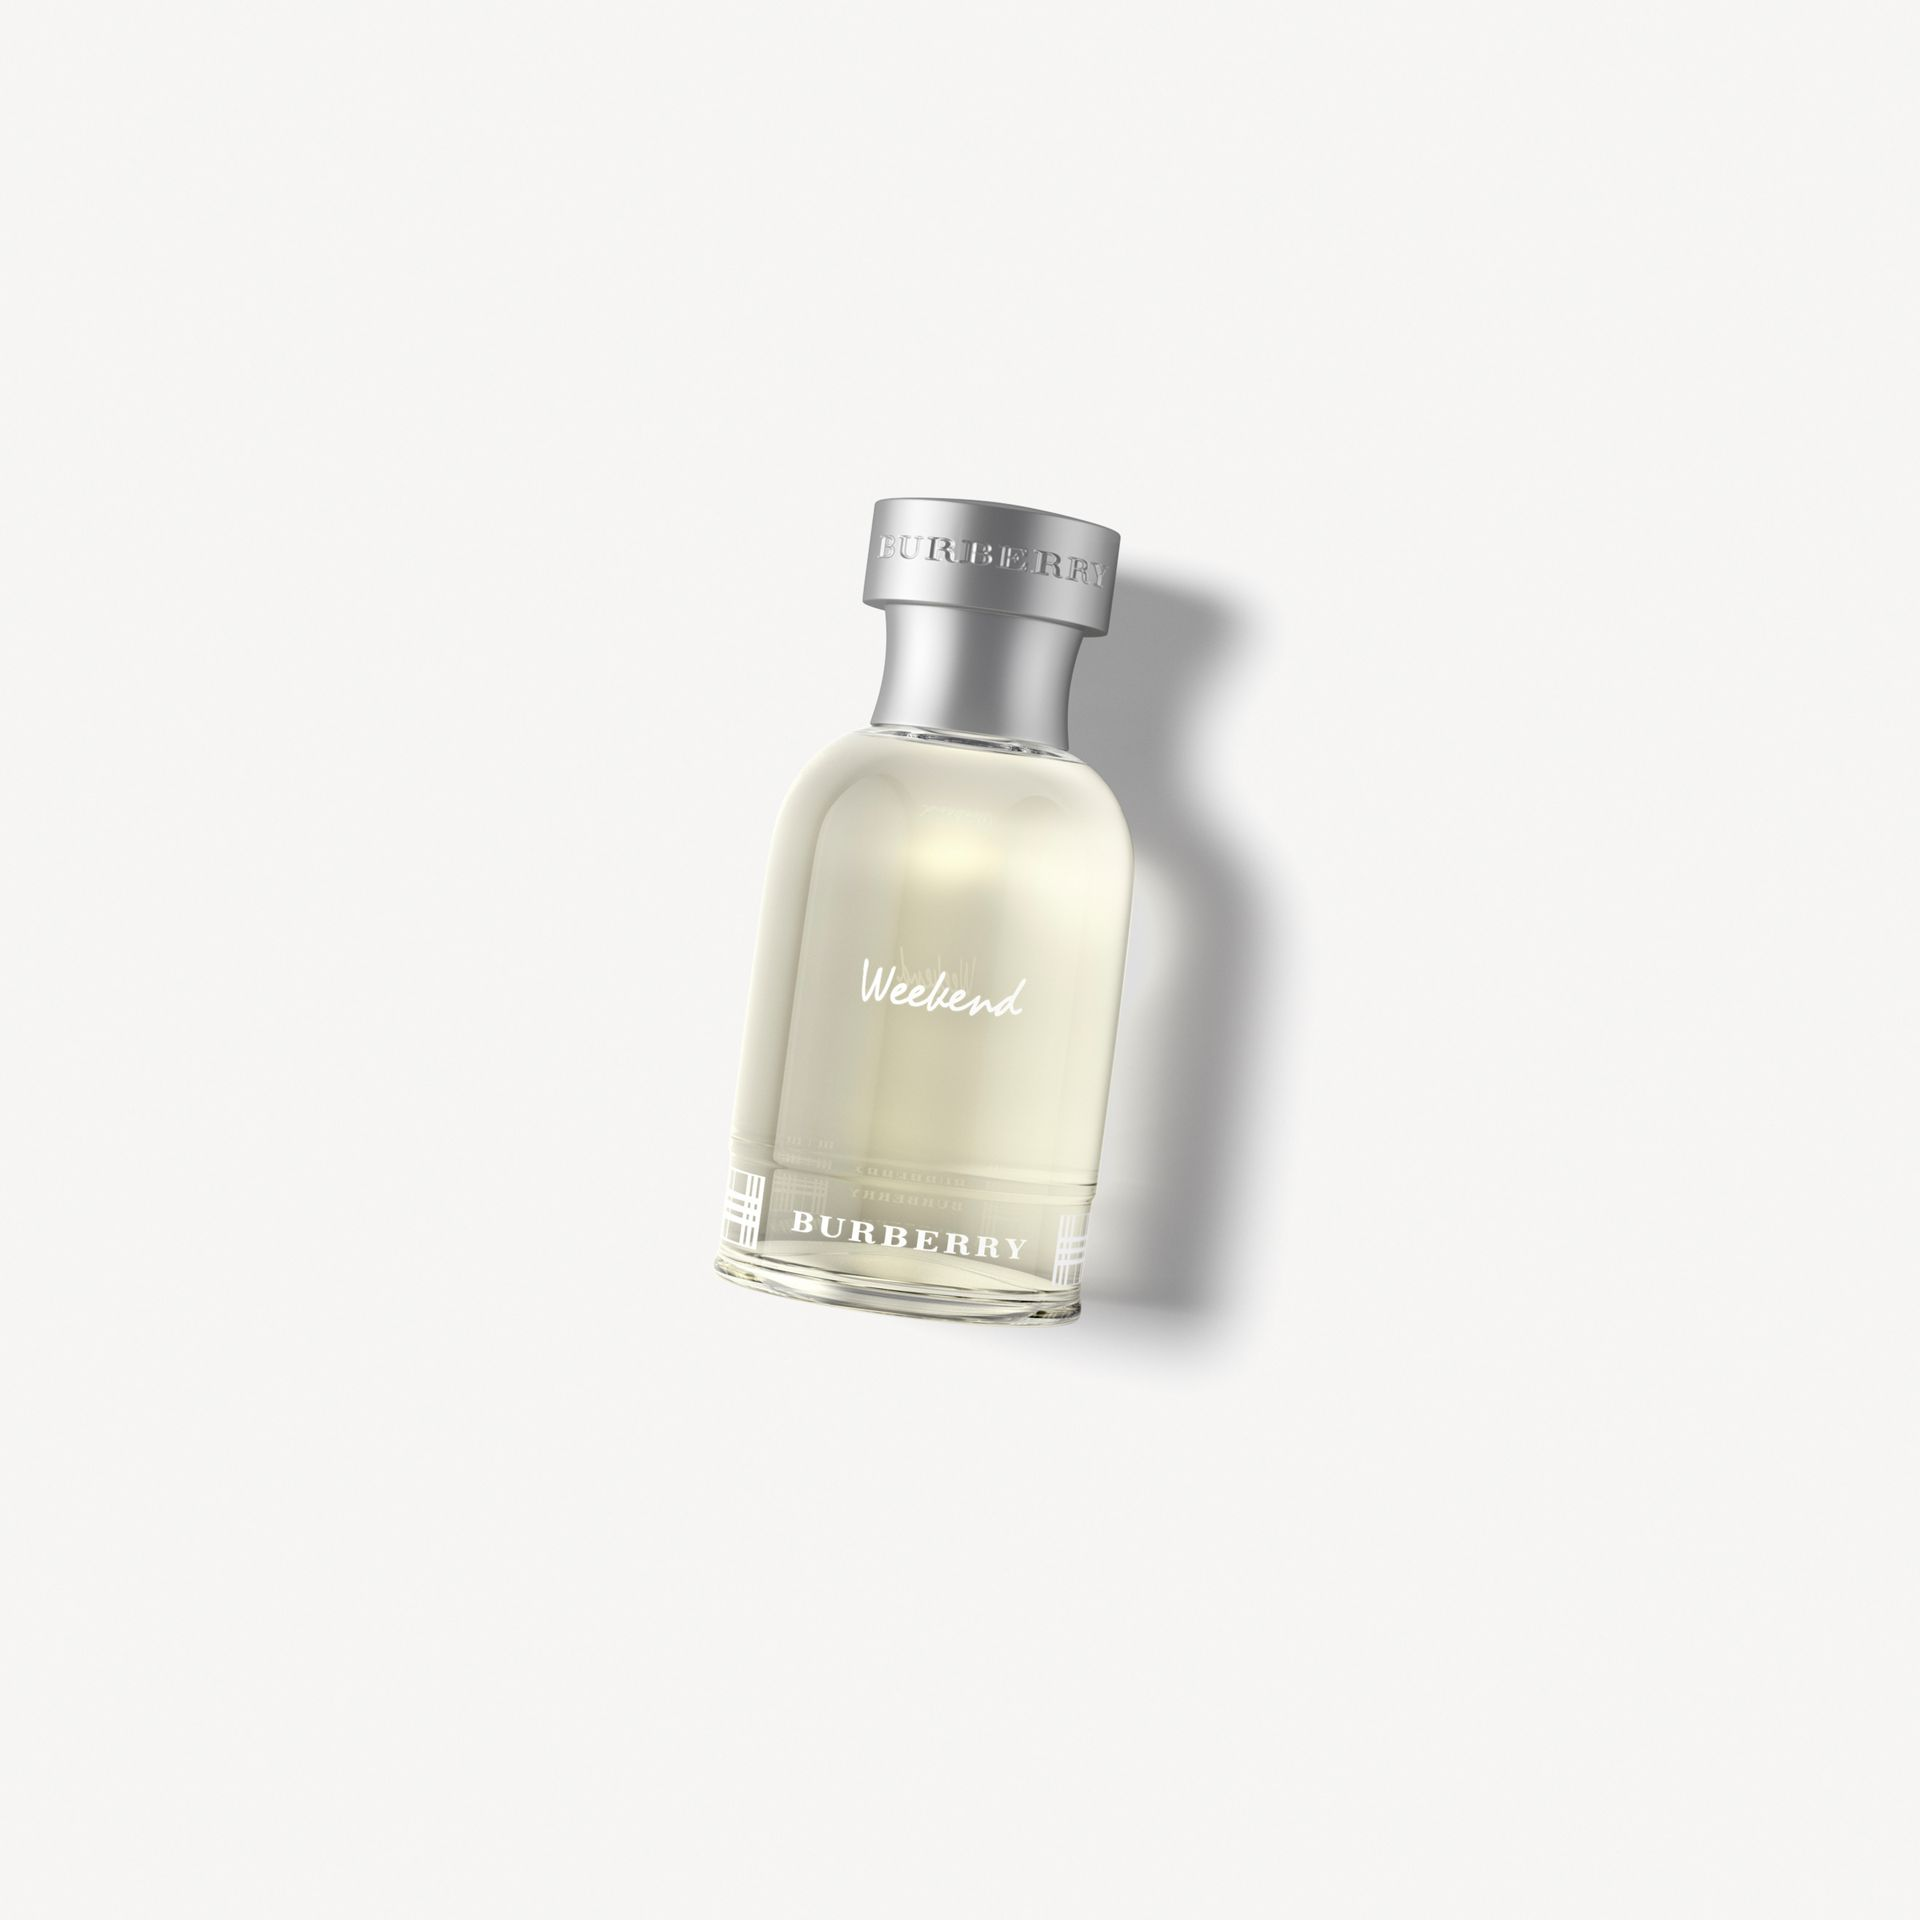 Burberry Weekend Eau de Toilette 50 ml (50 ml) - Herren | Burberry - Galerie-Bild 0